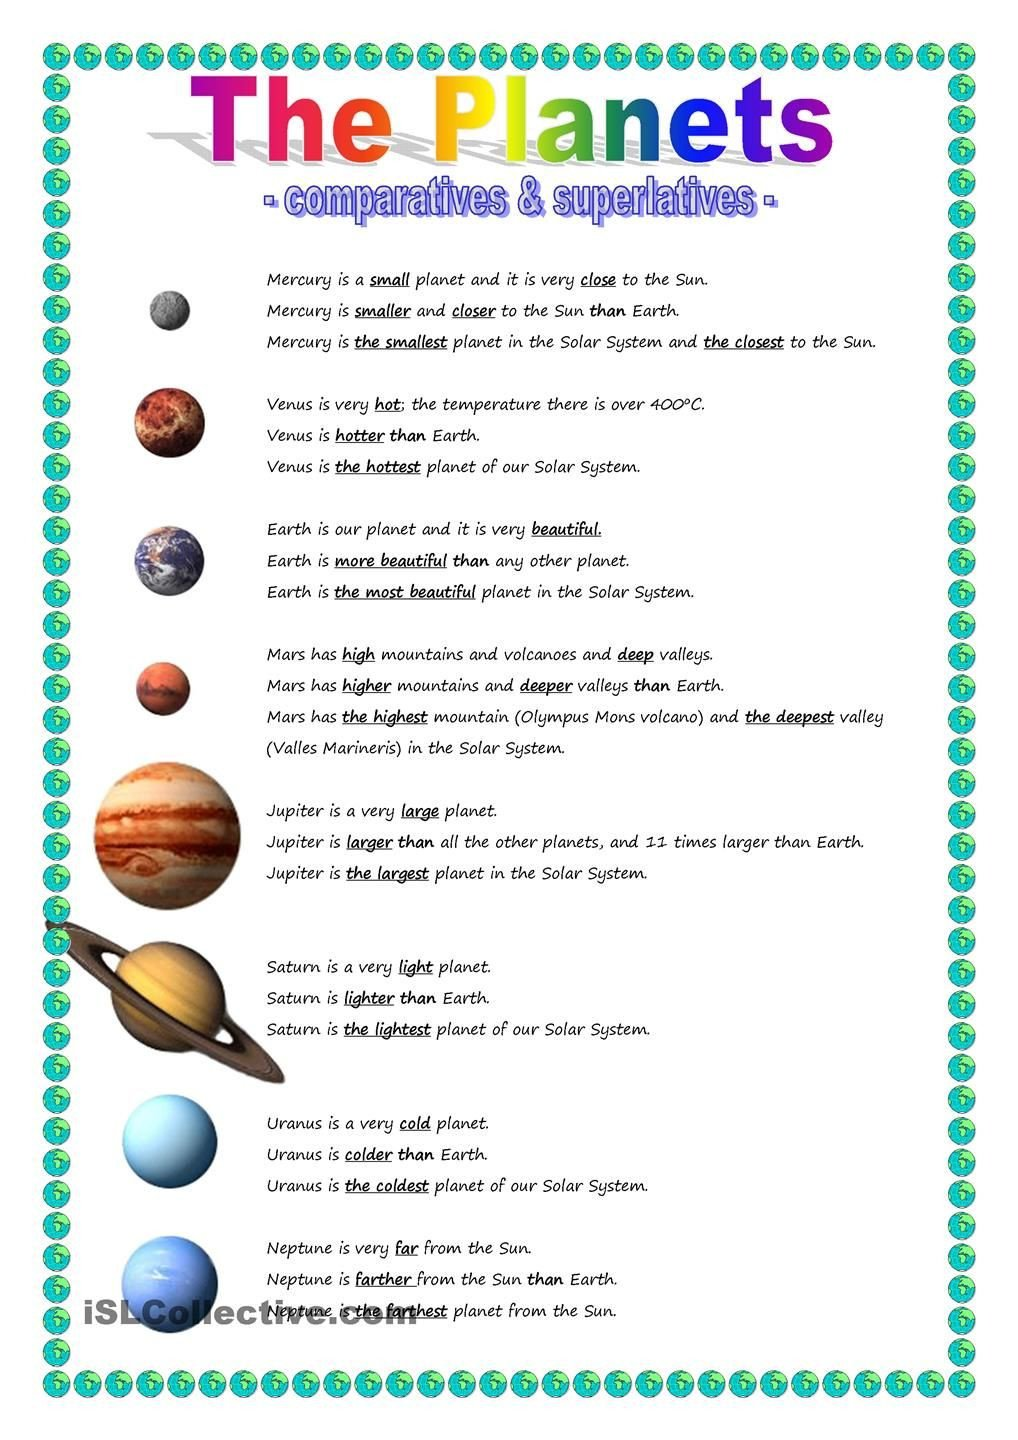 Solar System Worksheets 5th Grade the Planets Parative & Superlative